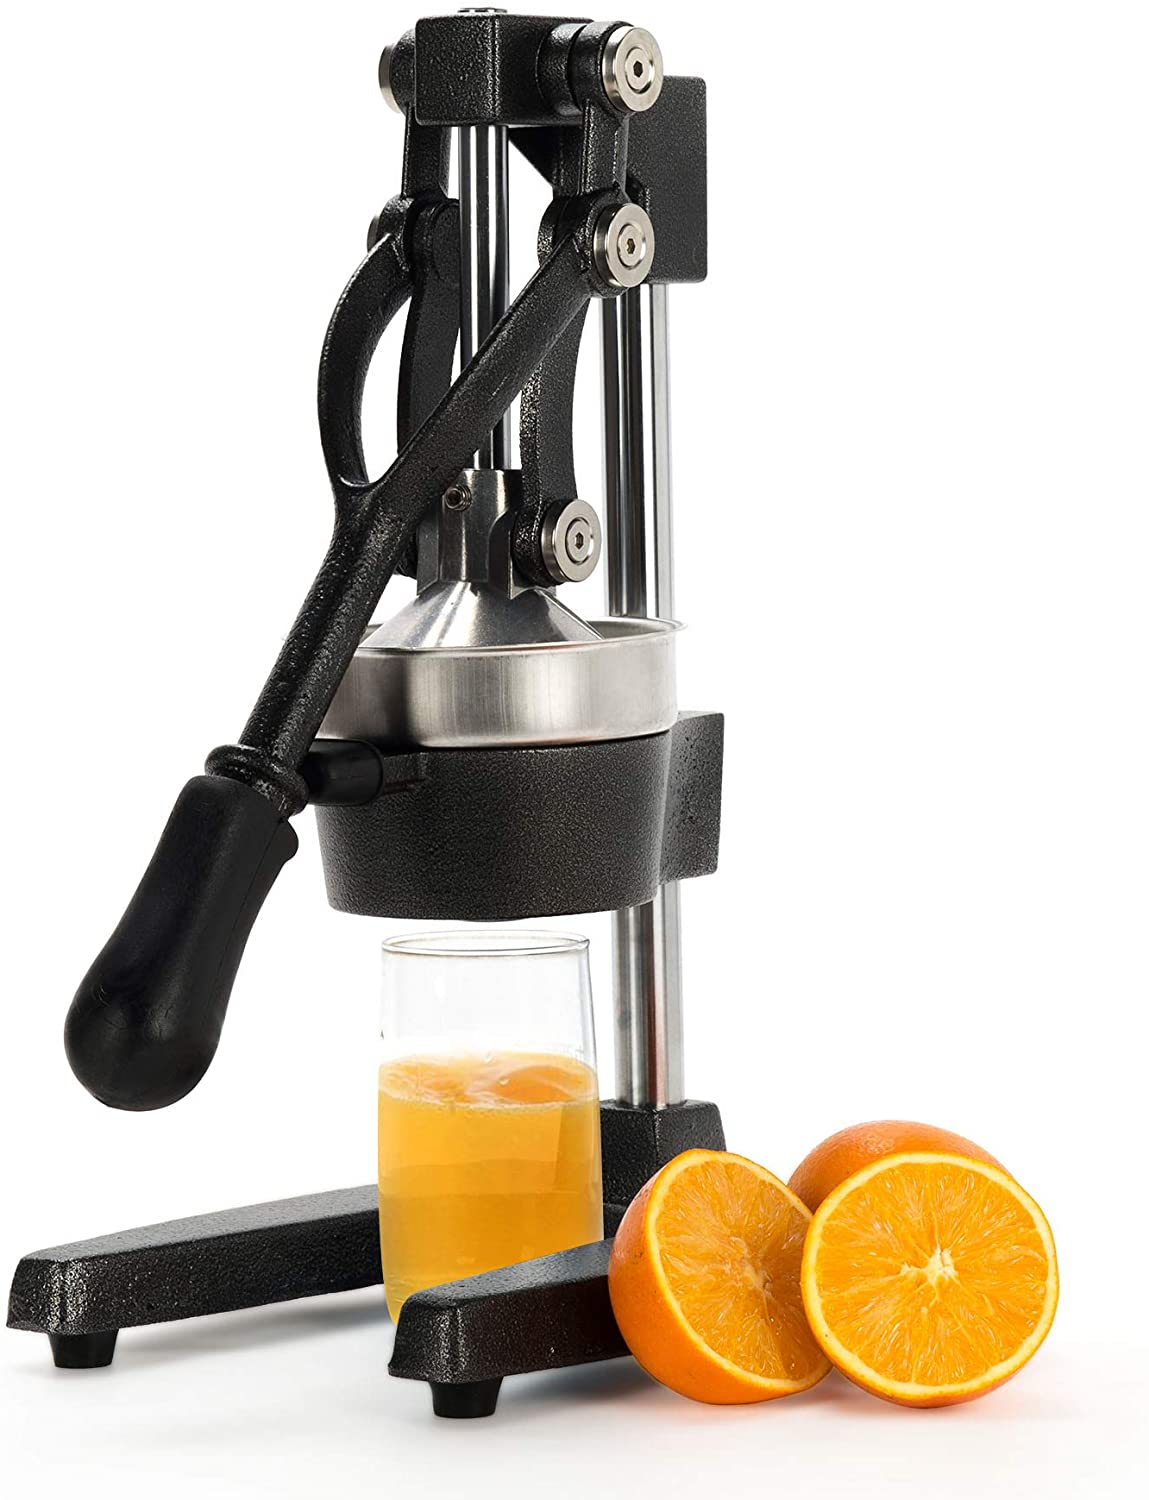 CO-Z Commercial Grade Citrus Juicer  (Black)